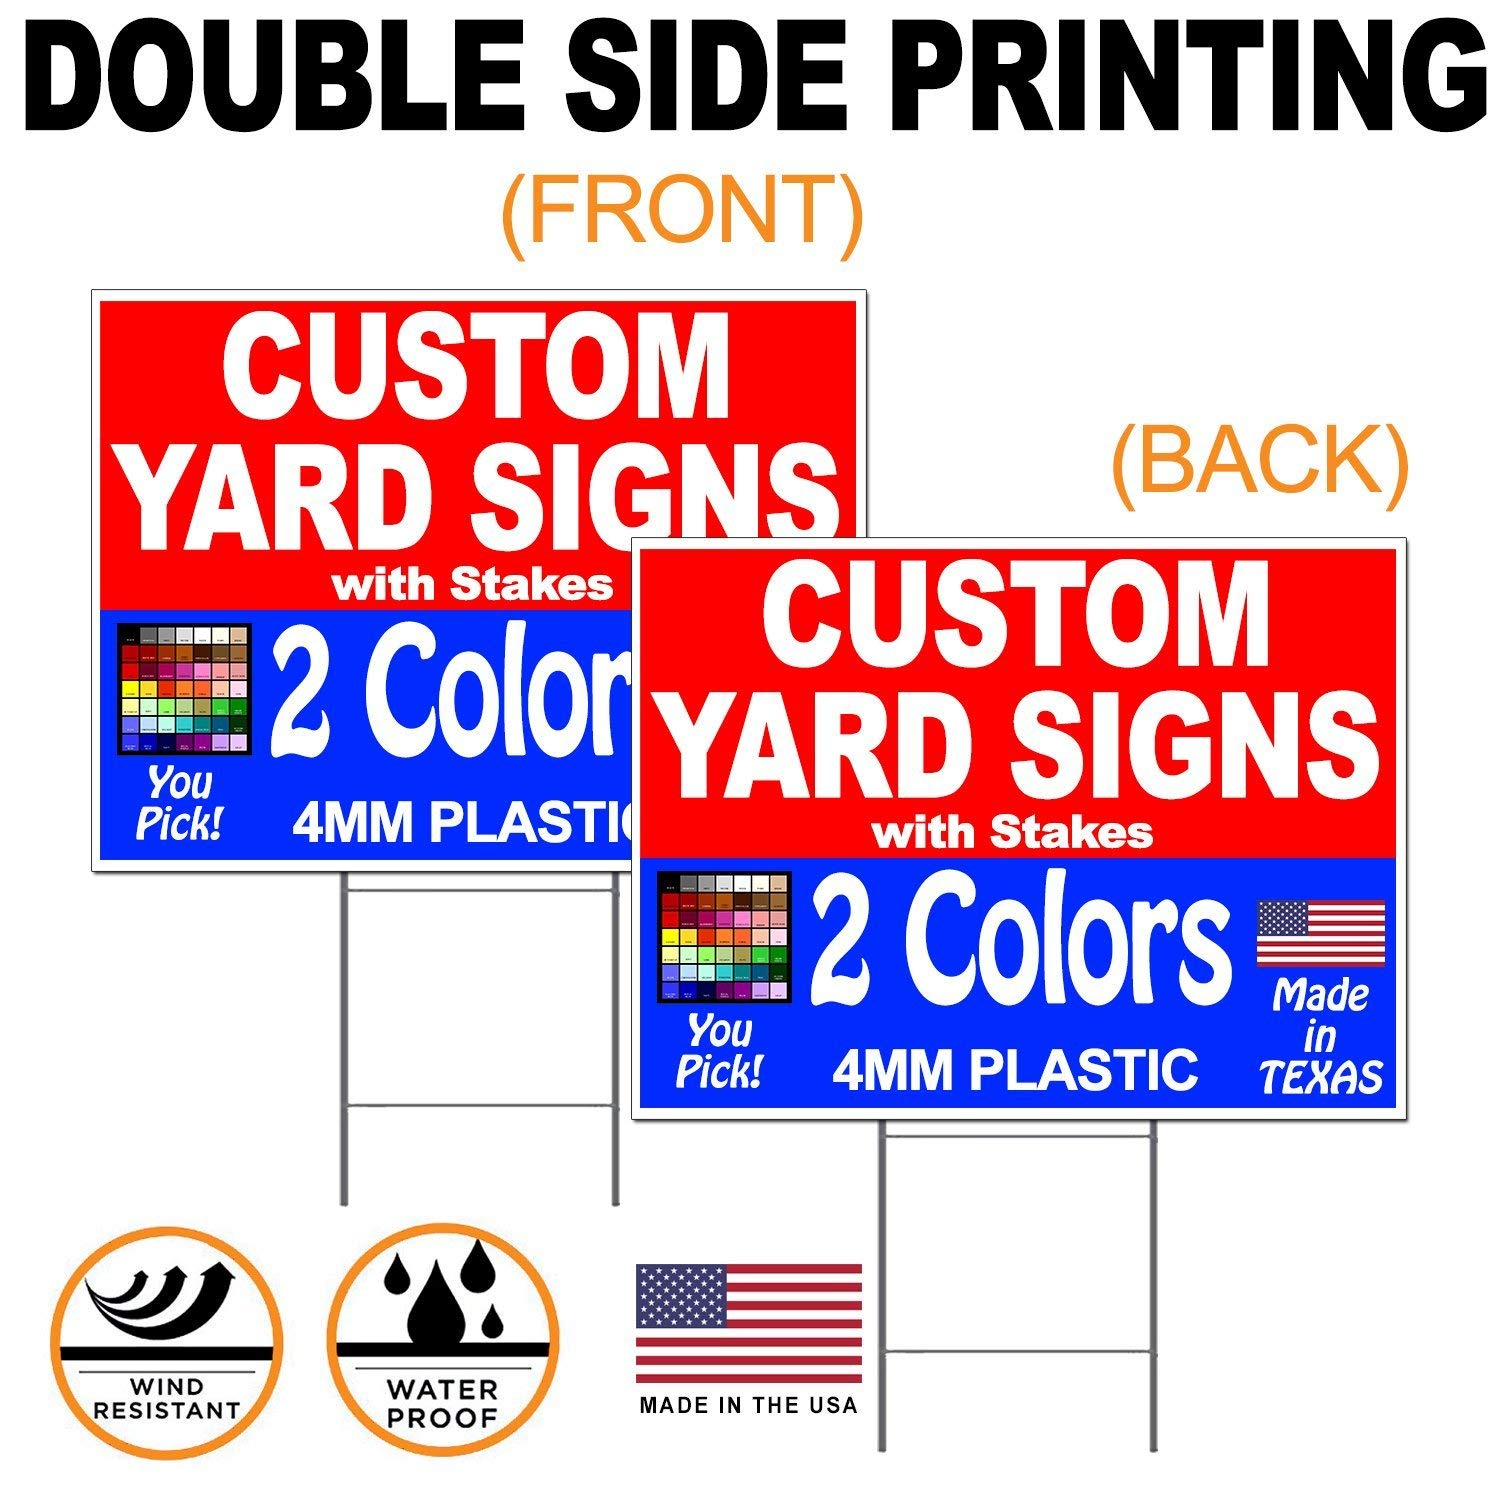 "Vibe Ink 50 Pack of 18 x 24"" Two-Colors (2) Custom Front & Back (2) Sided Yard Signs Printing"